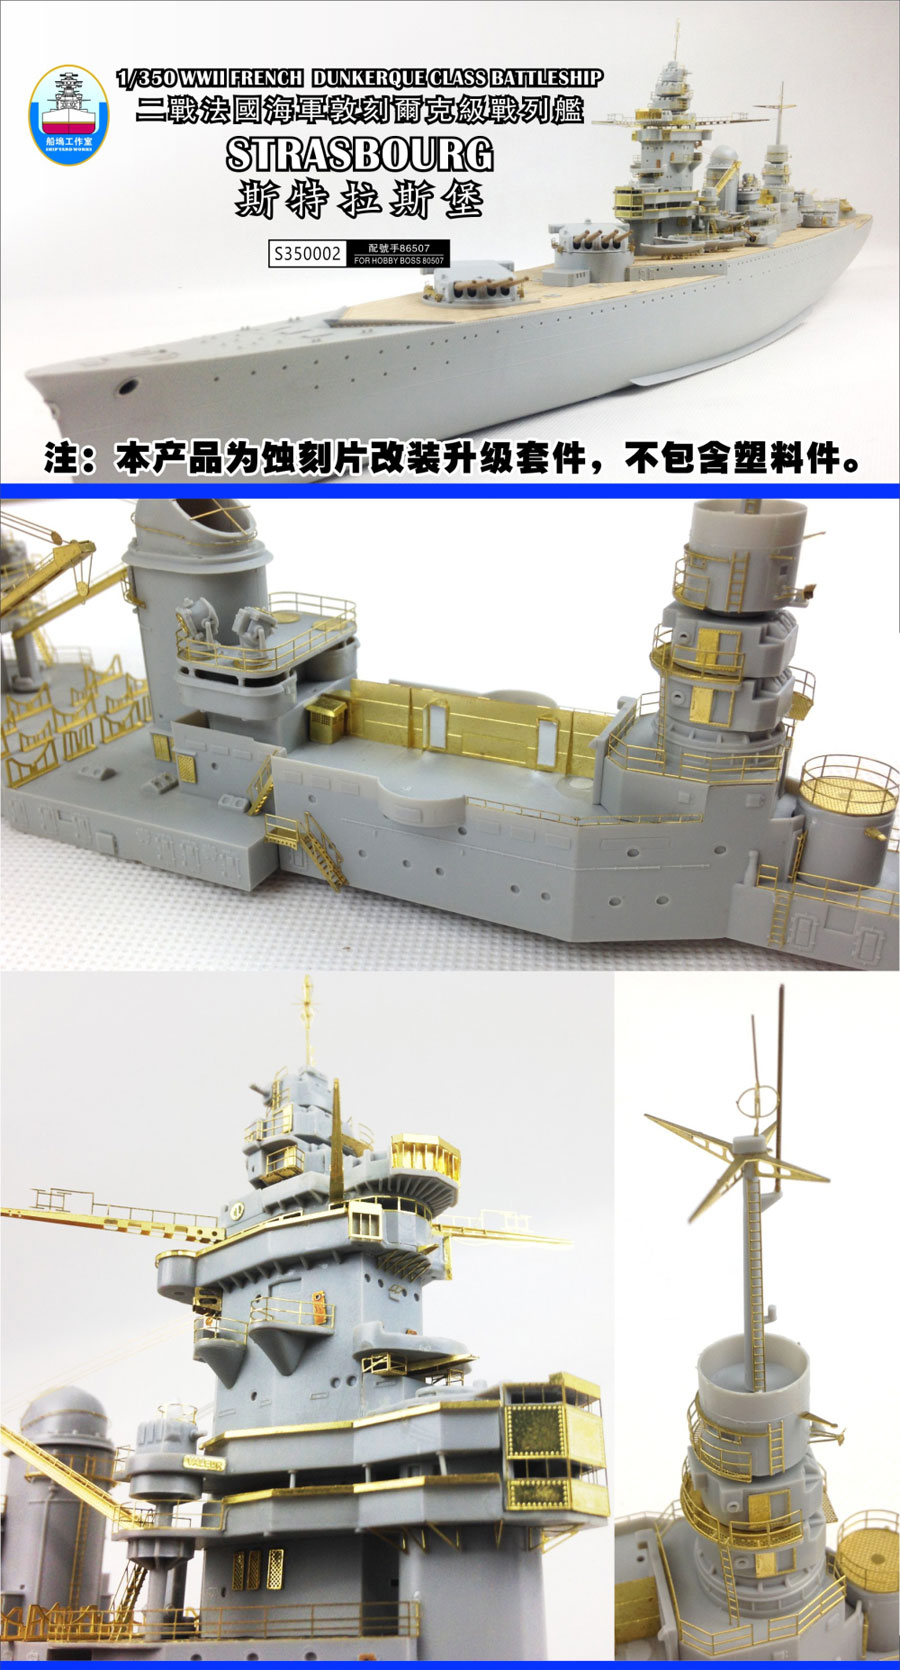 Ship Yard Works new items added FOR 1350 1700 SHIPS